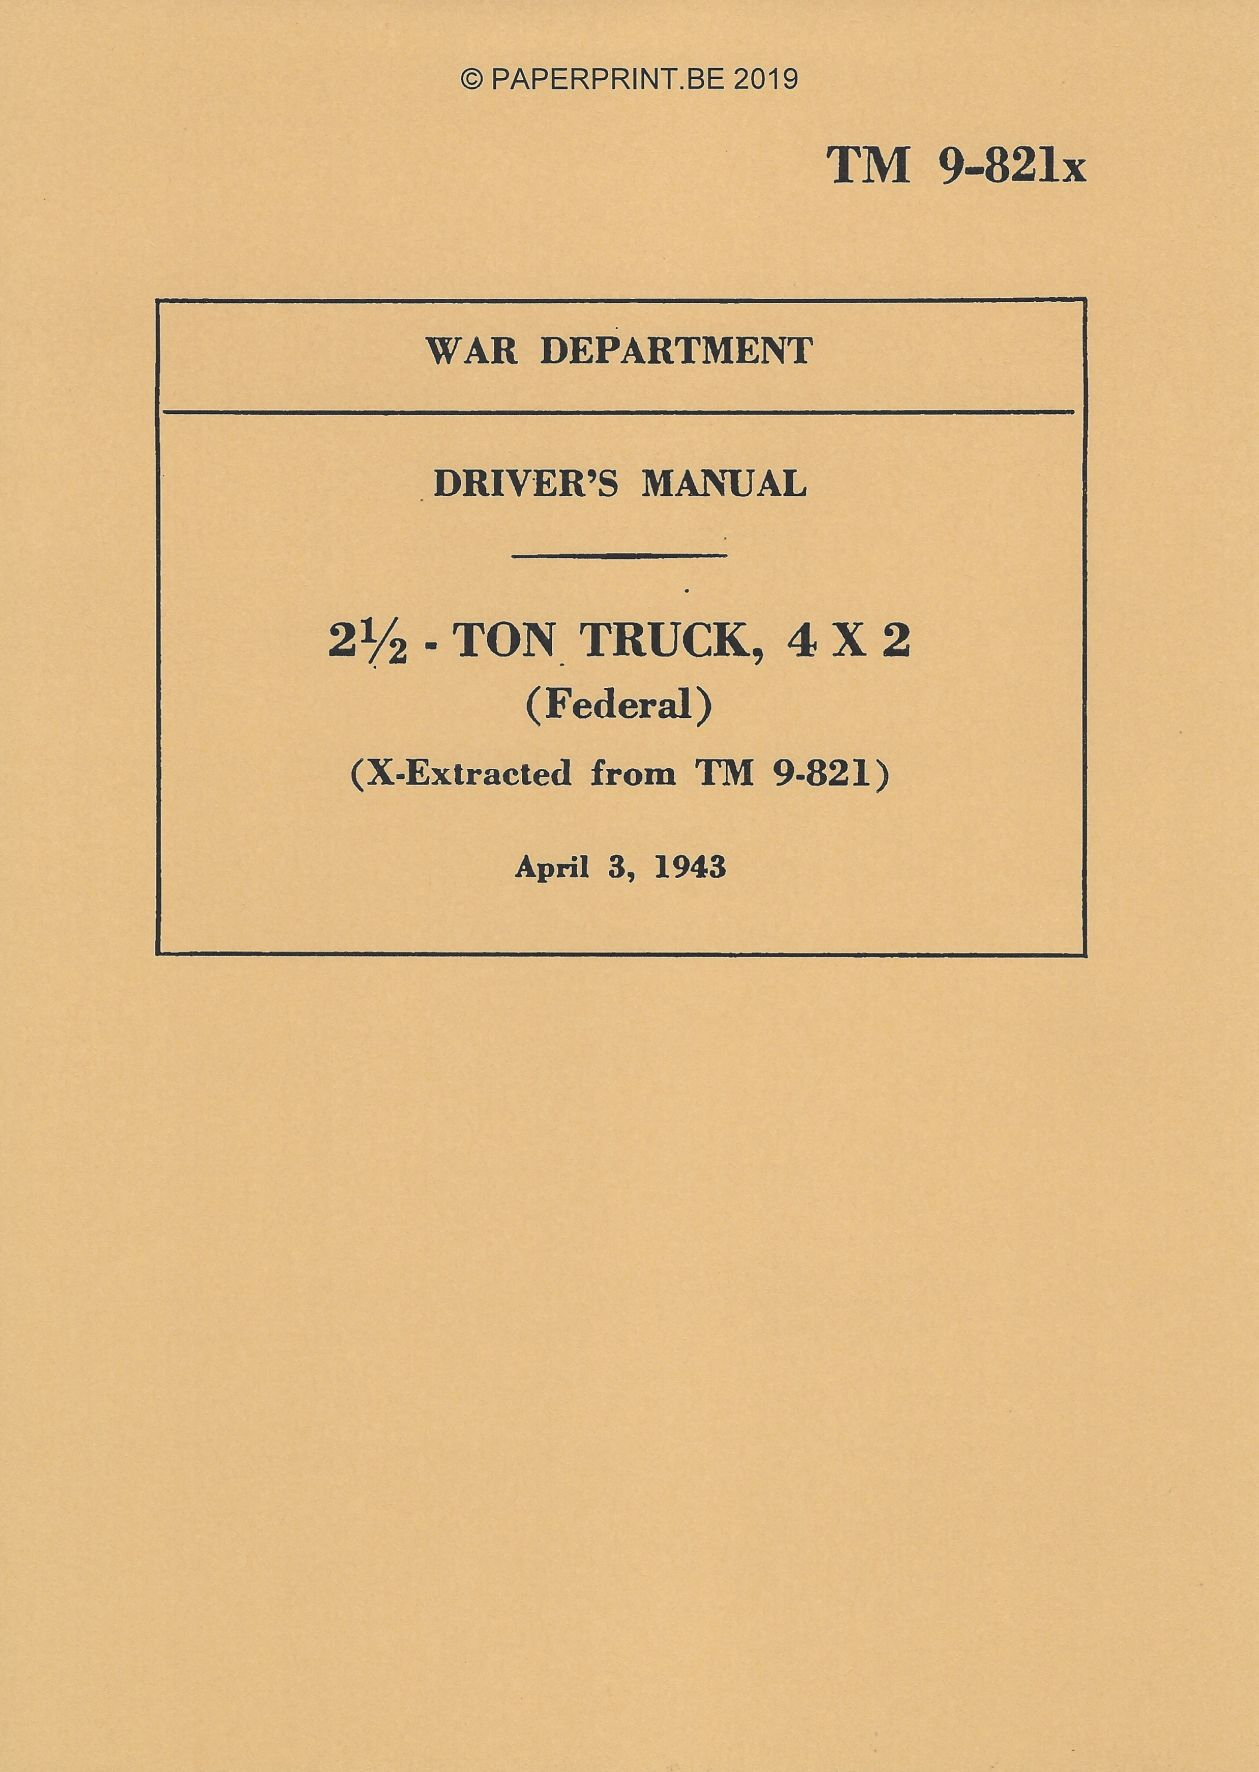 TM 9-821x FEDERAL 2 ½ TON 4x2 TRUCK DRIVER'S MANUAL